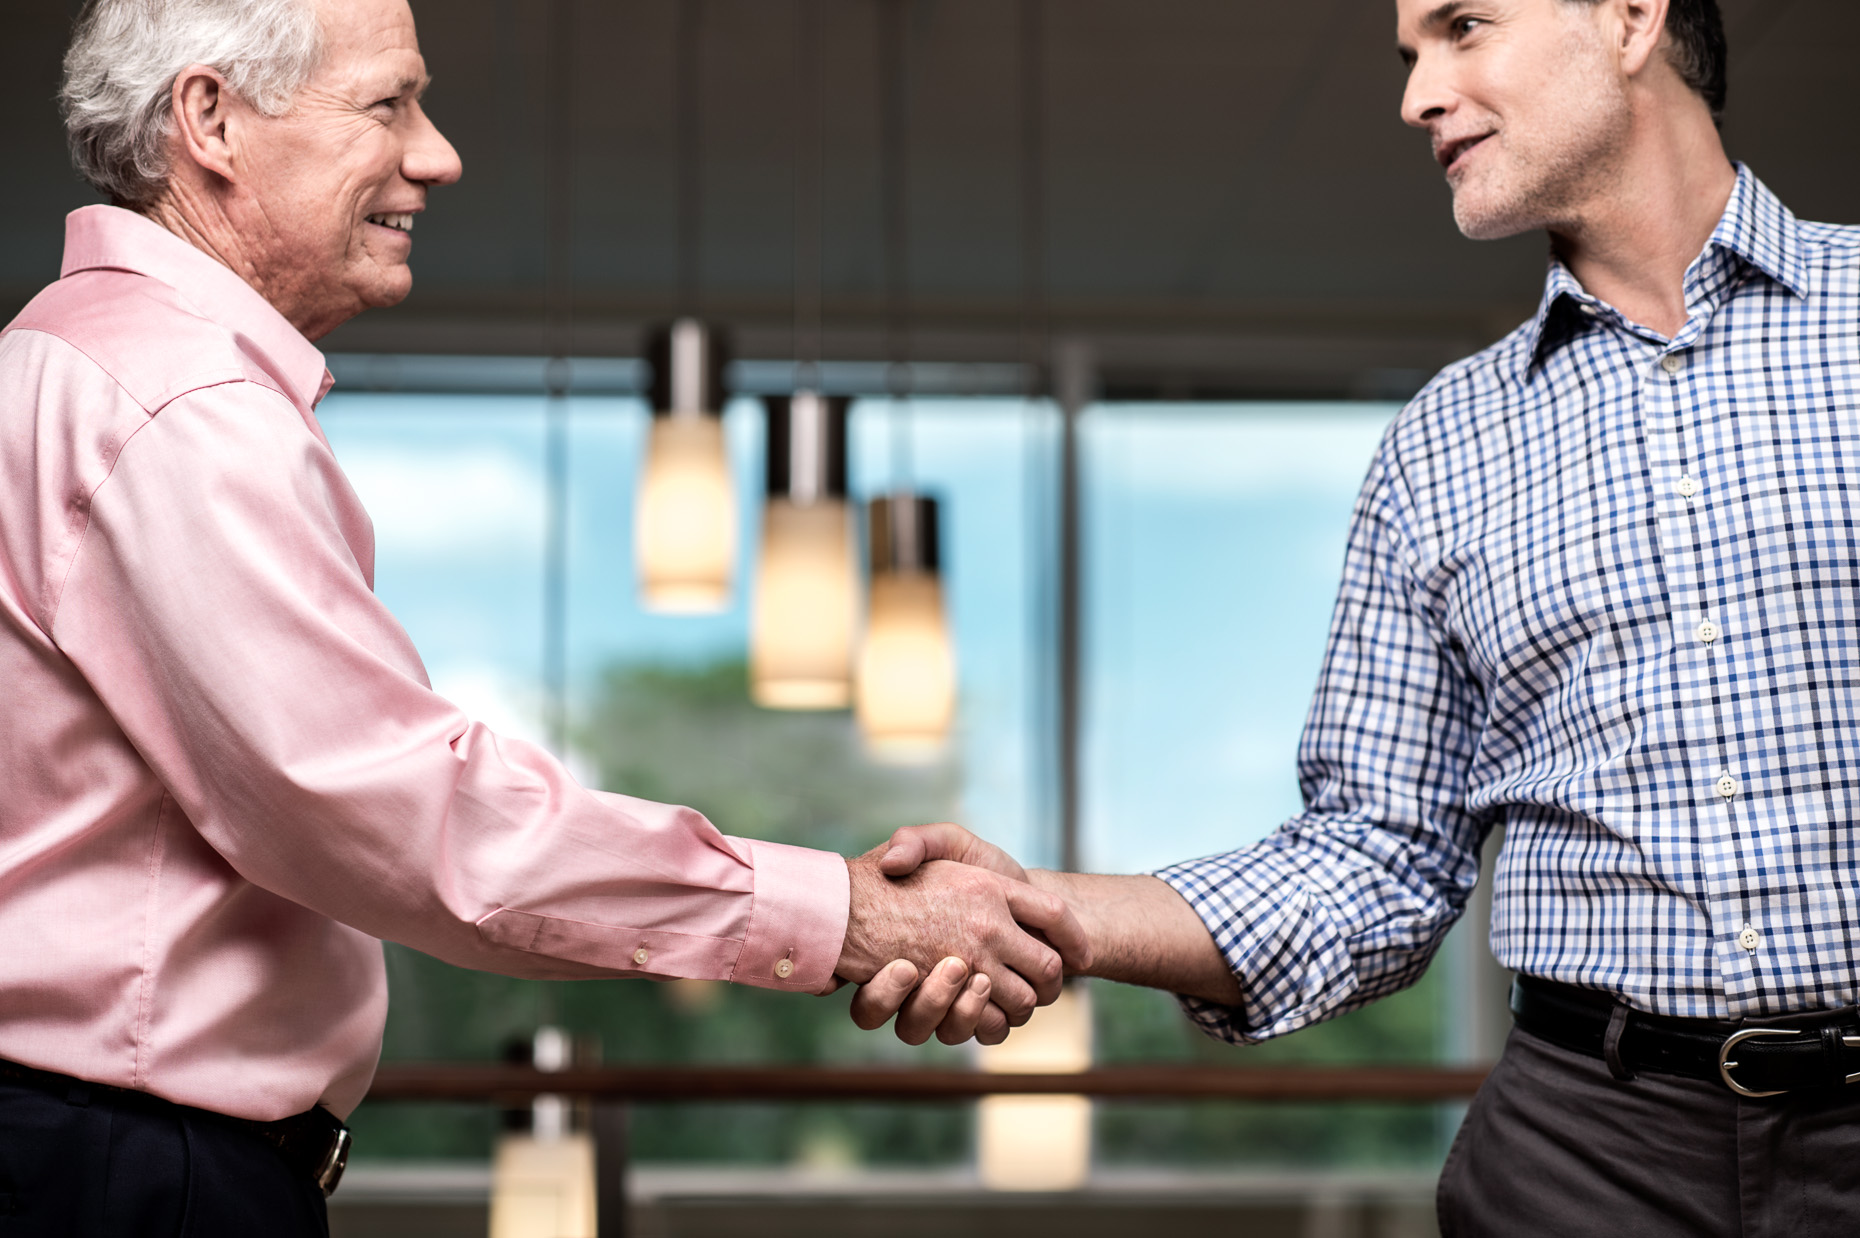 corporate-advertising-handshake-portrait